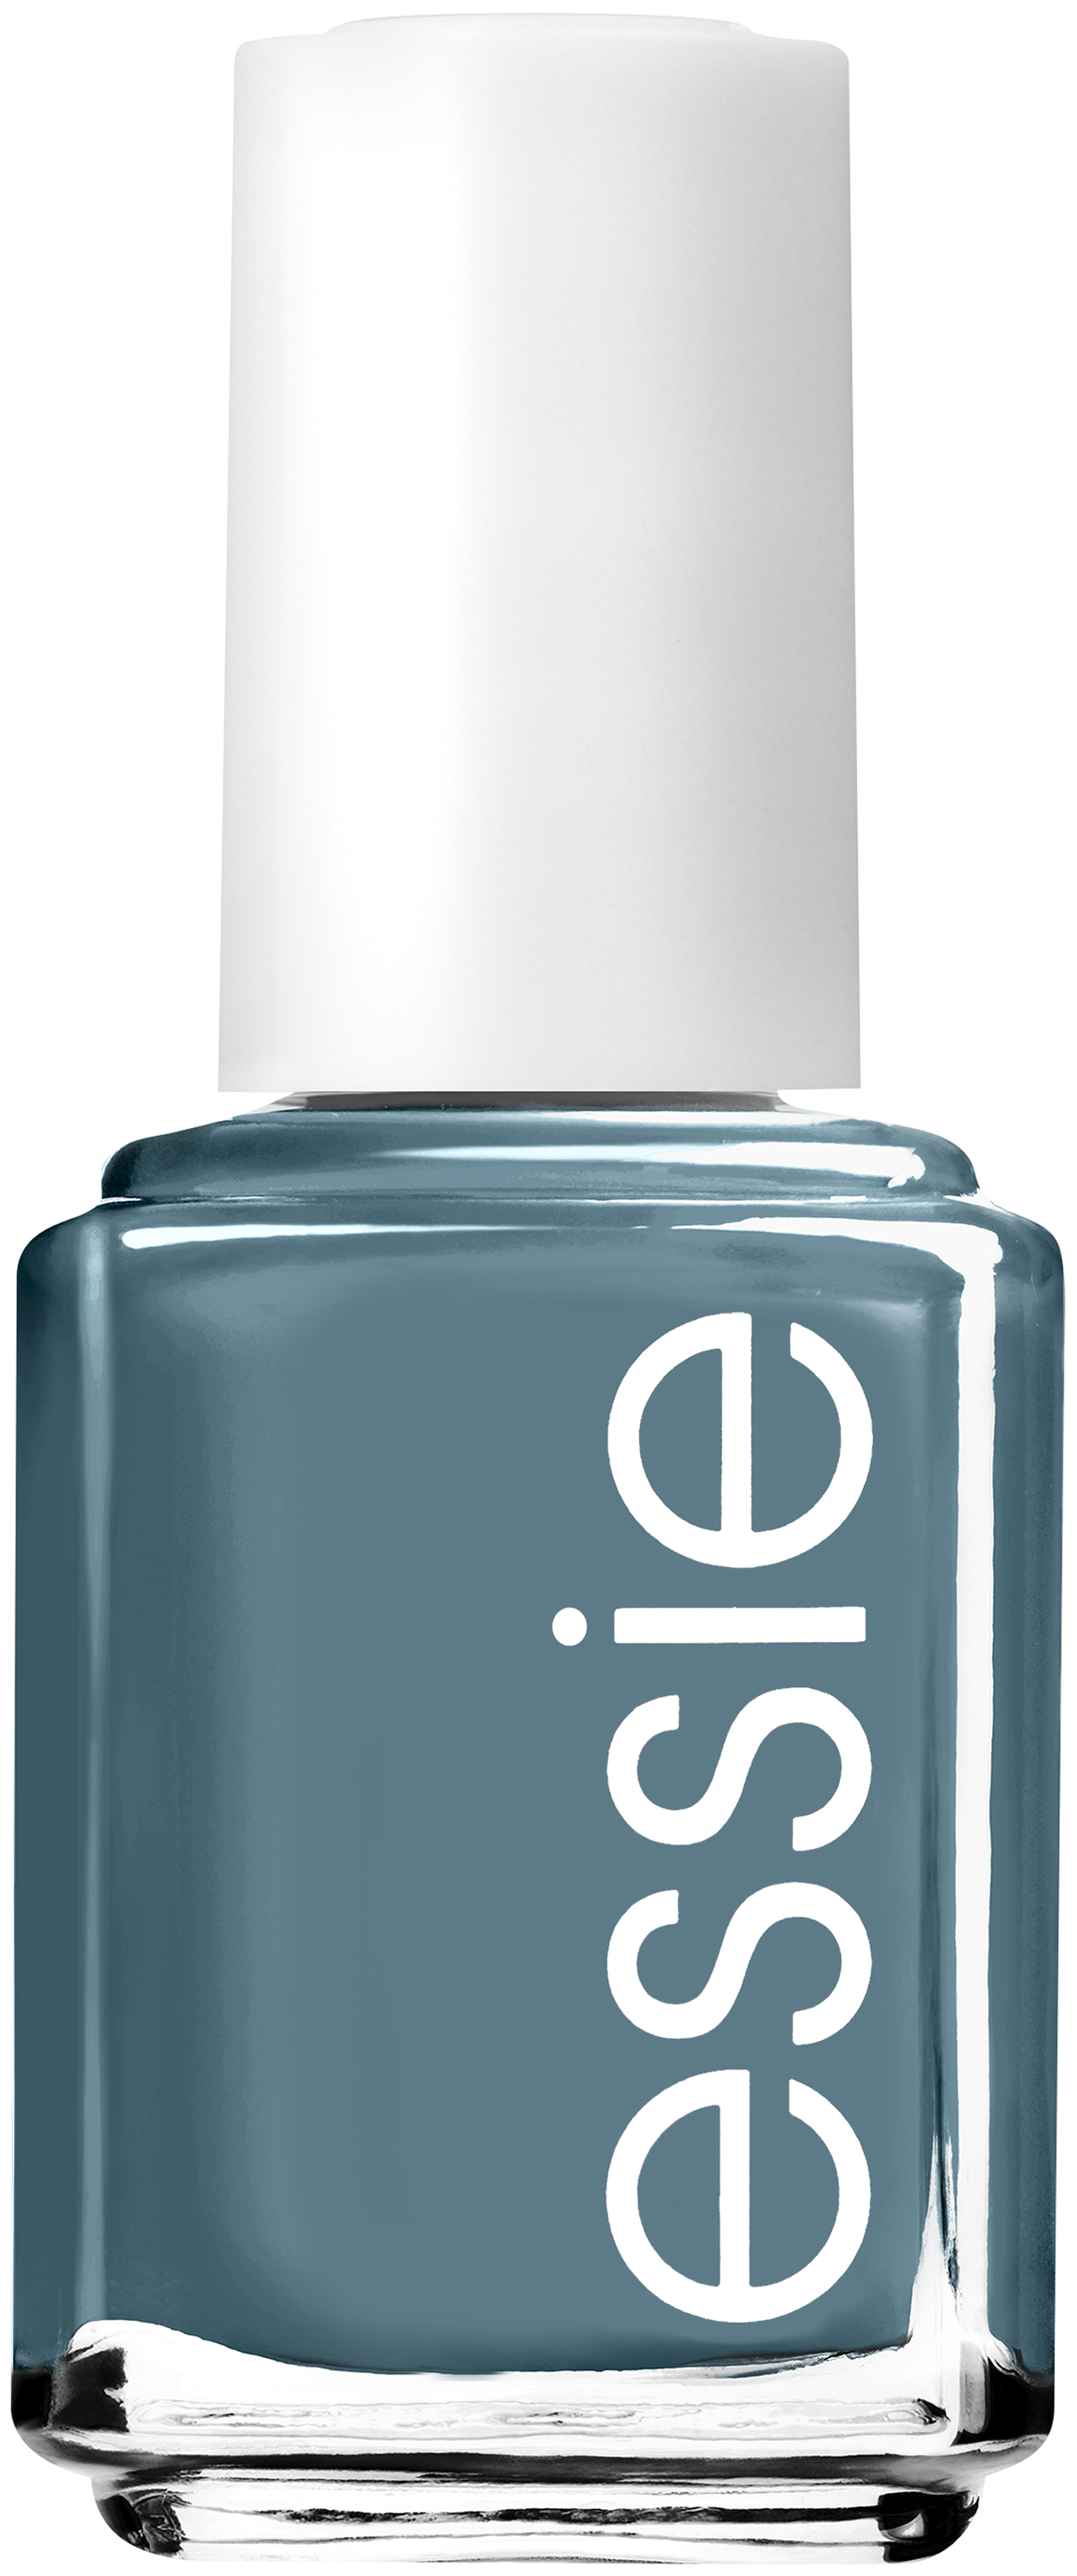 essie pool side service